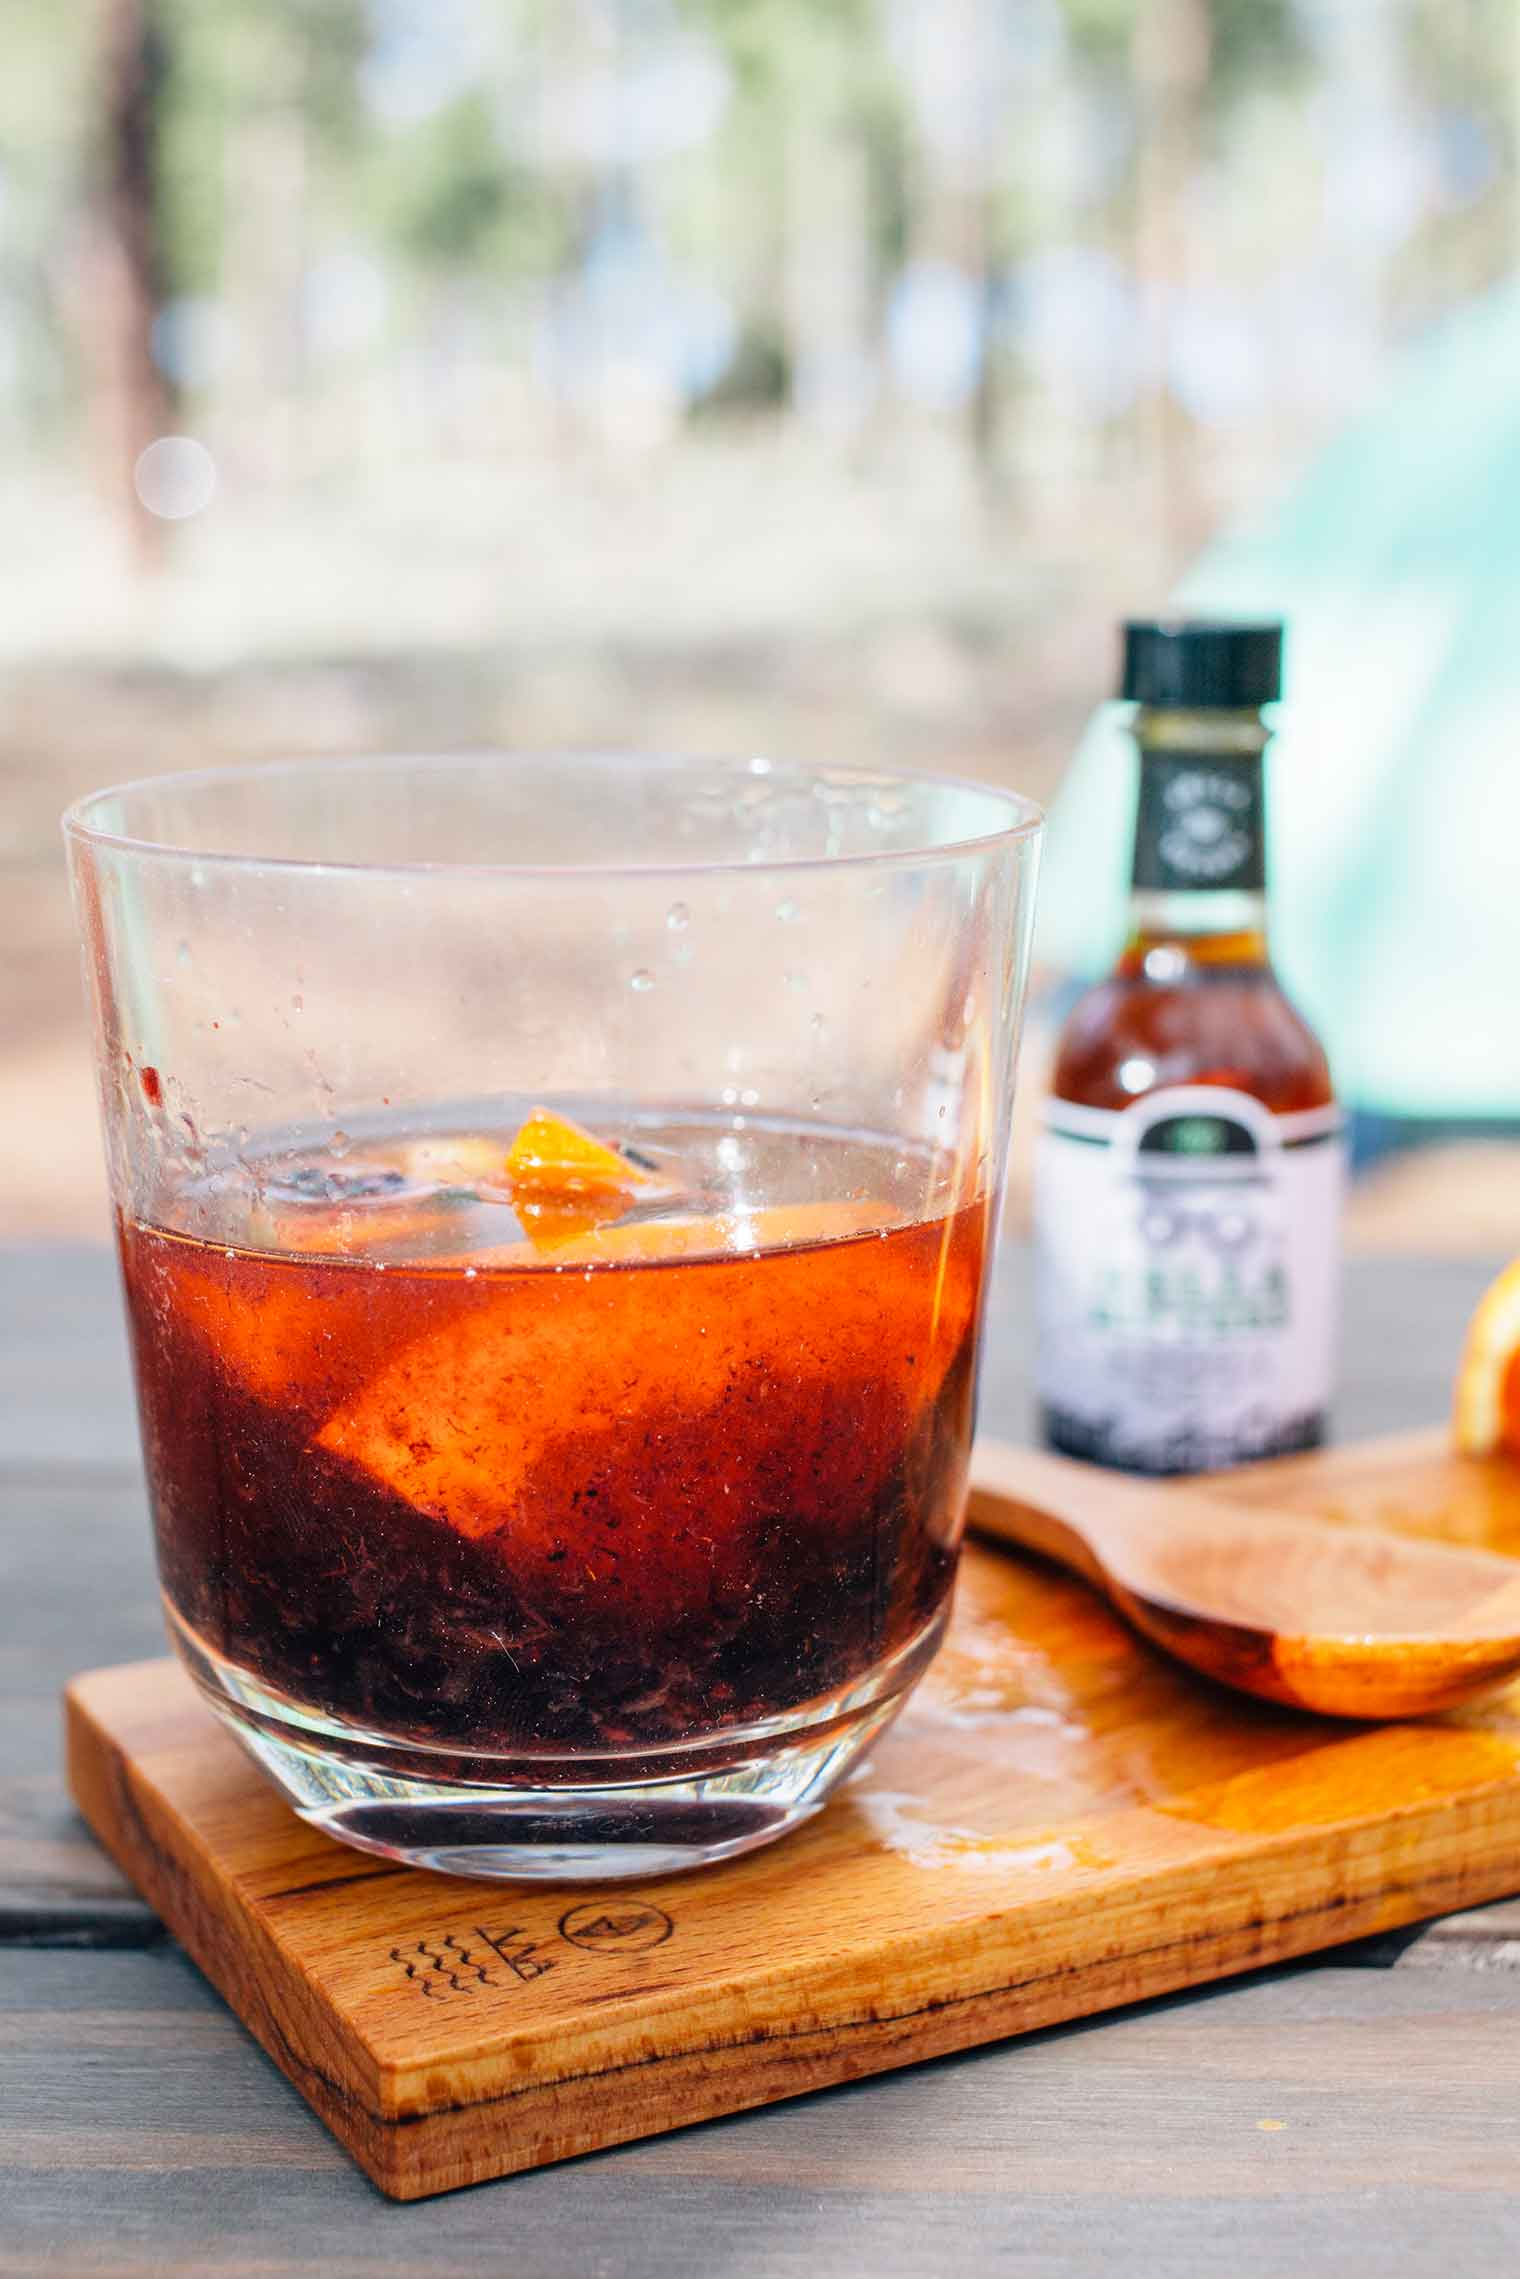 Looking for the perfect summer camping cocktail? This Blackberry Citrus Old Fashioned is the warm weather whiskey drink you've been waiting for.